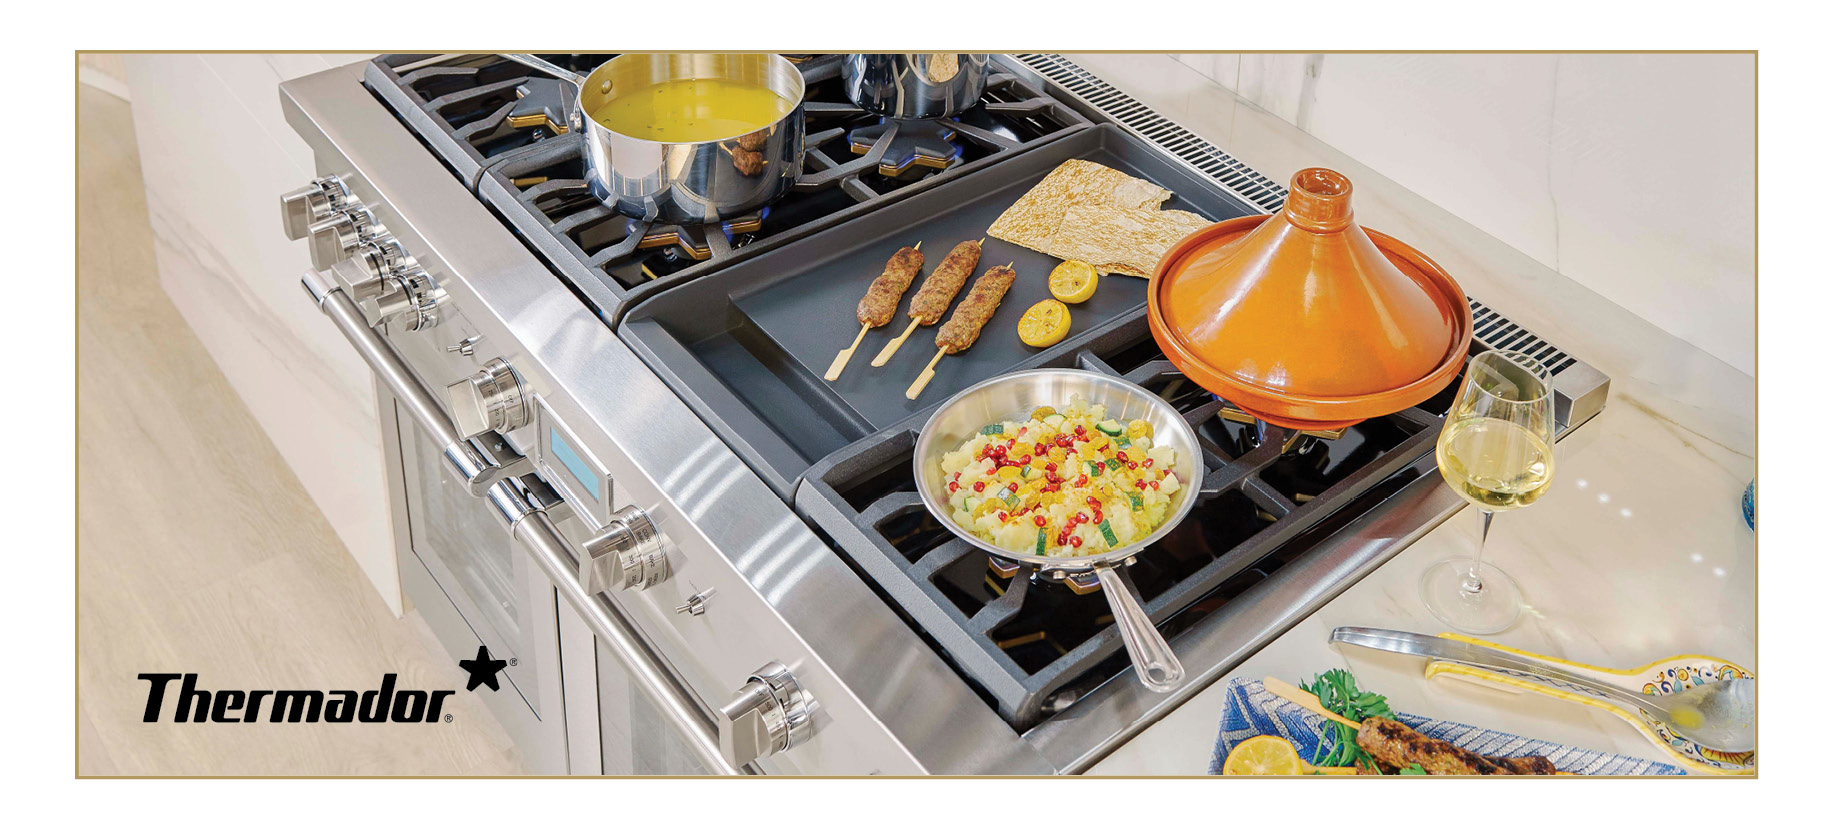 Thermador Dual Fuel Professional Range in silver. Pots and pans with food are arranged on top of the range. A glass of wine is placed to the side.